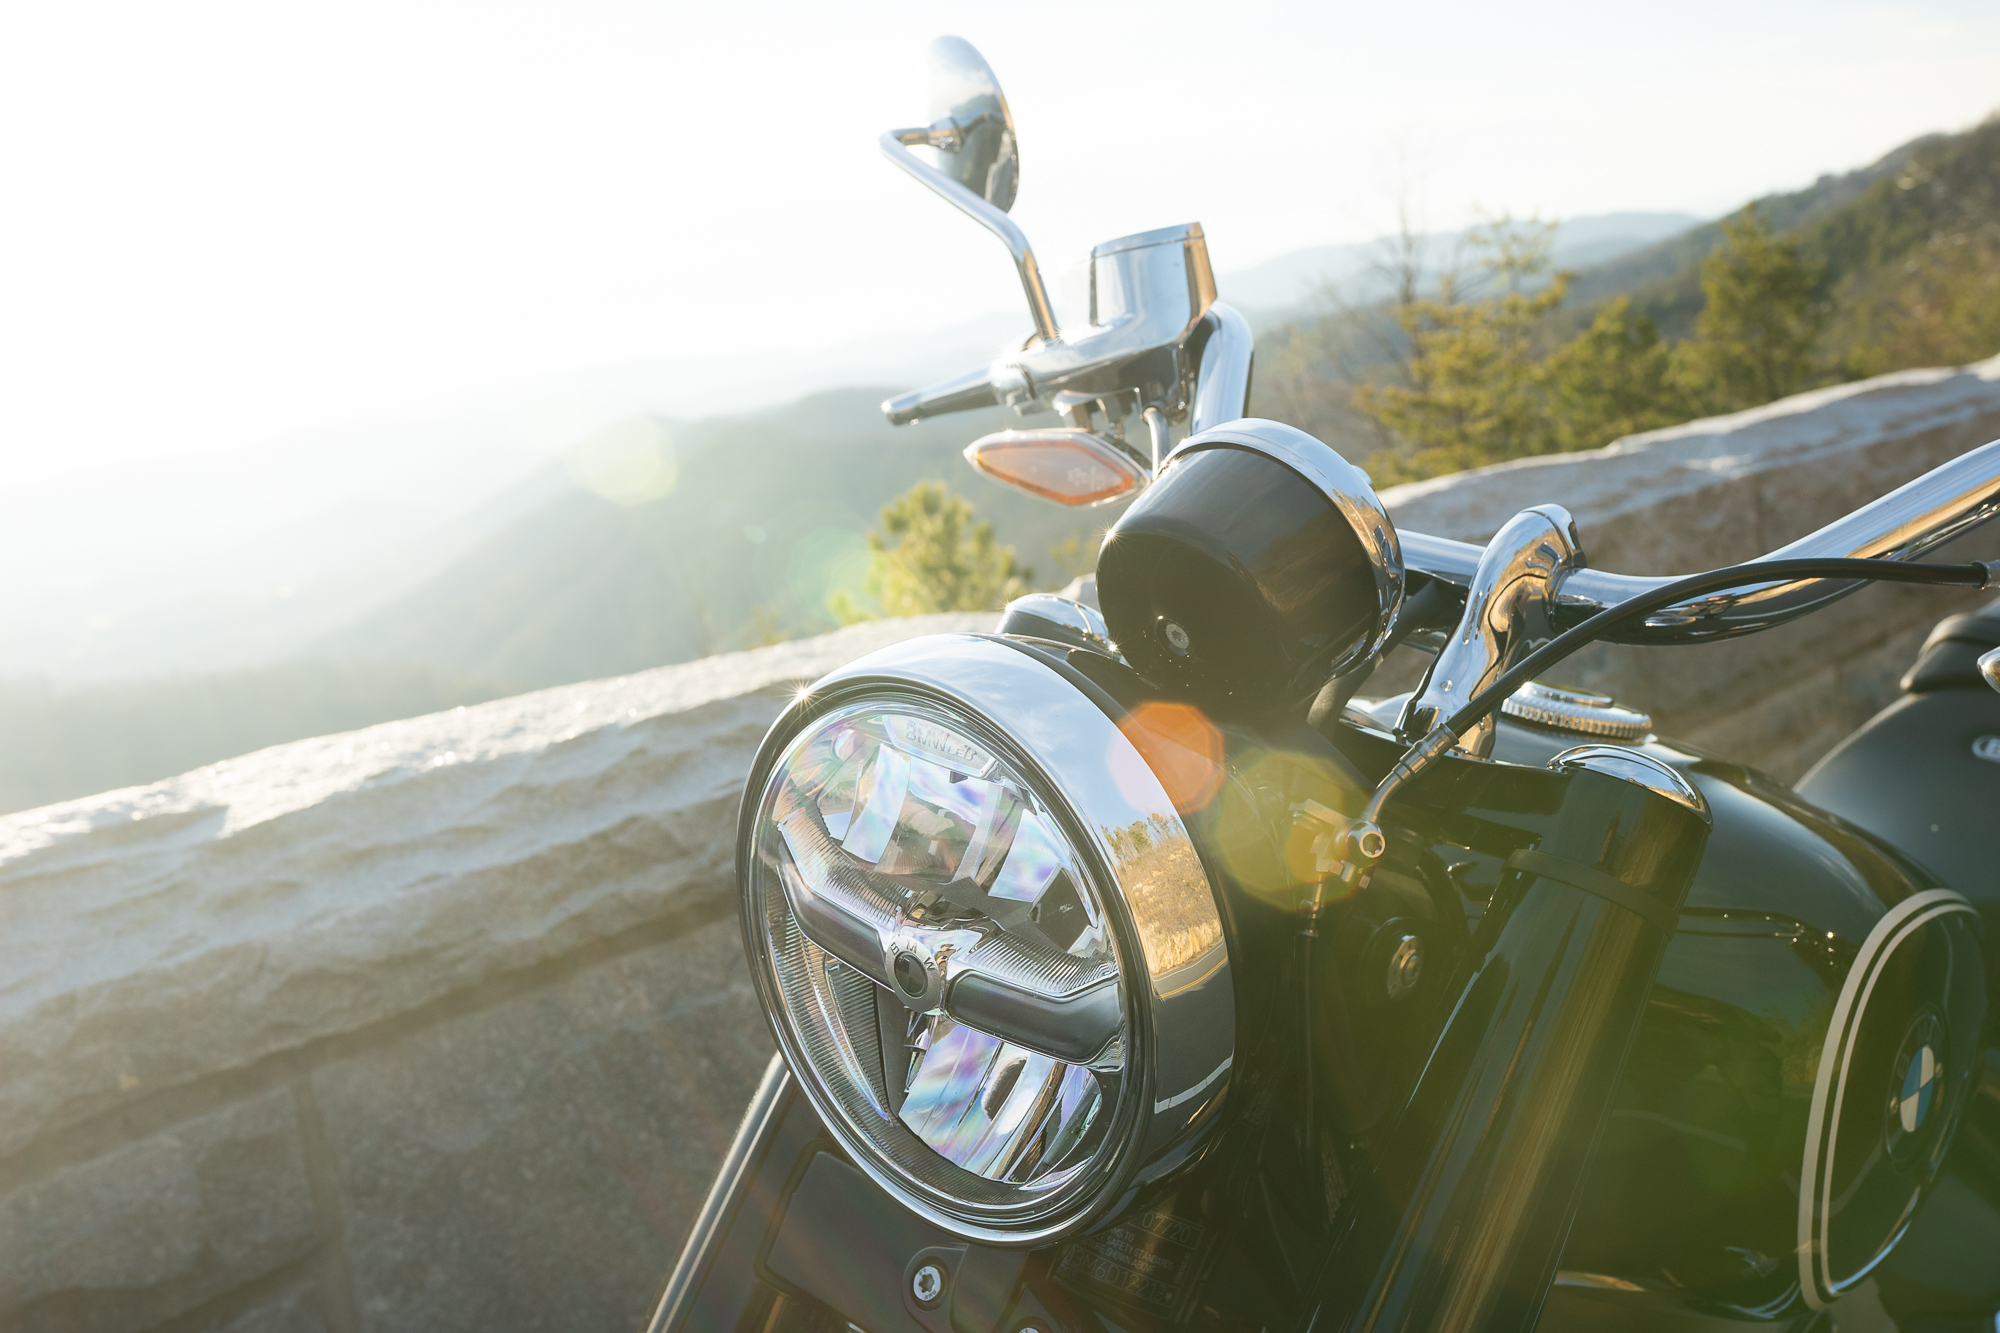 BMW R 18 motorcycle front detail solar flare